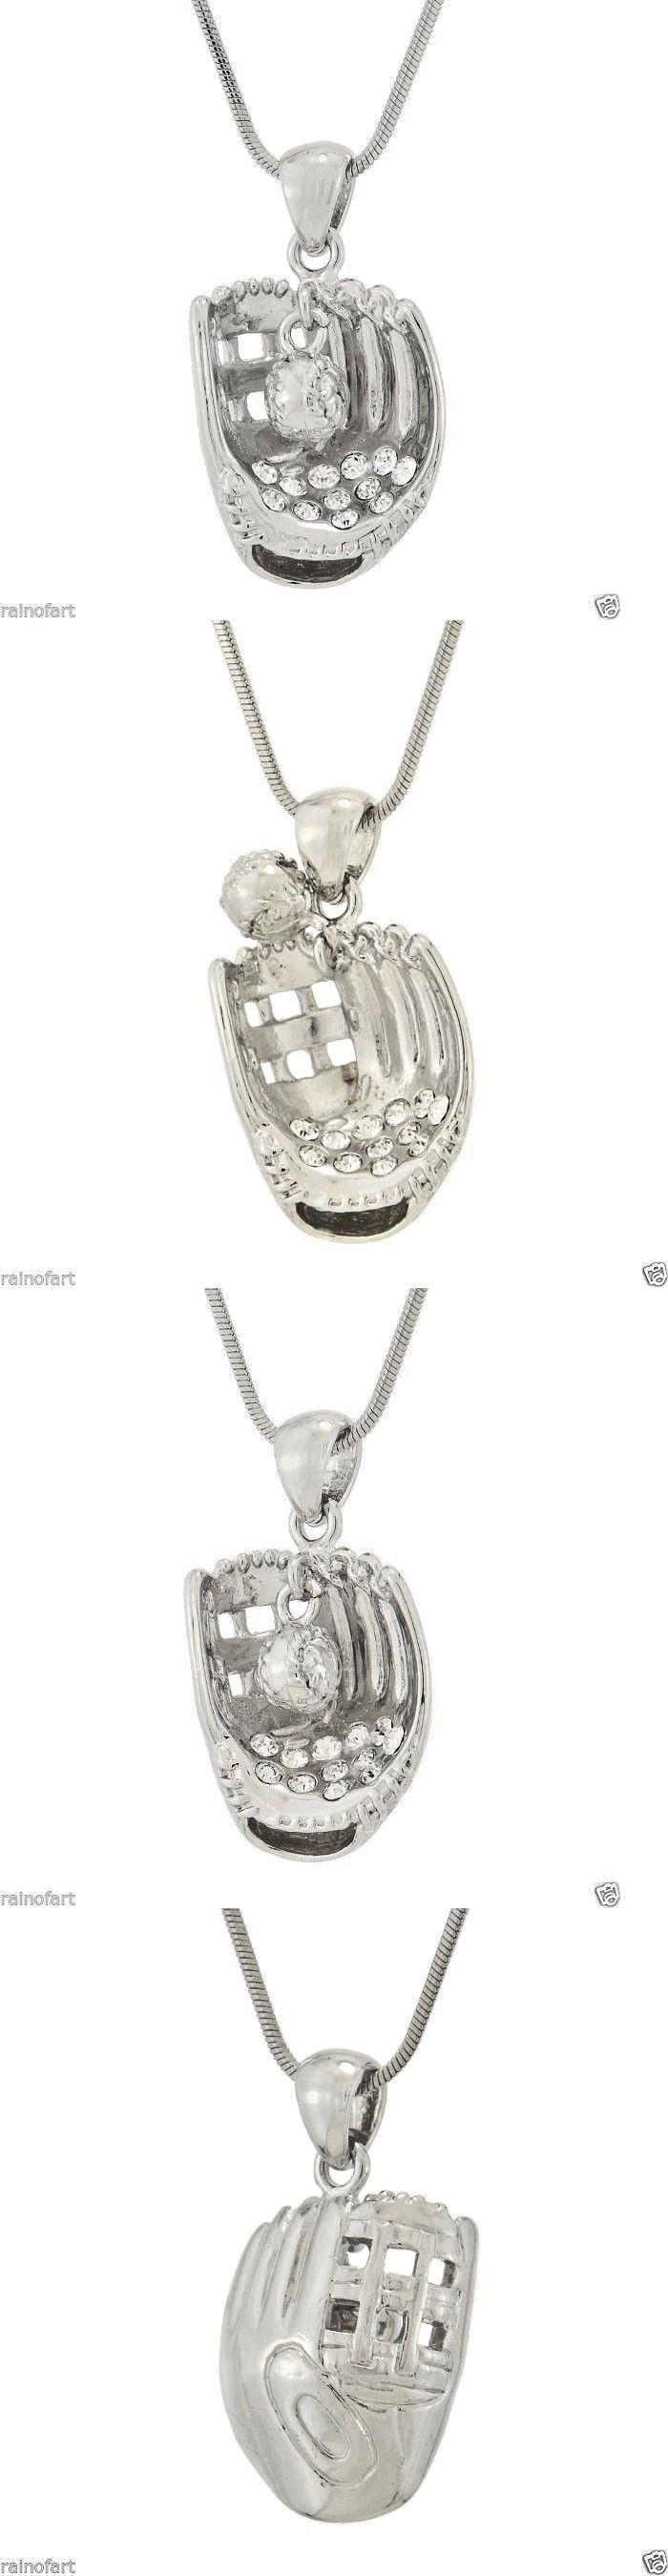 Necklaces and Pendants 155101: W Swarovski Crystal Baseball Softball Glove Ball New Pendant Necklace Gift BUY IT NOW ONLY: $32.0